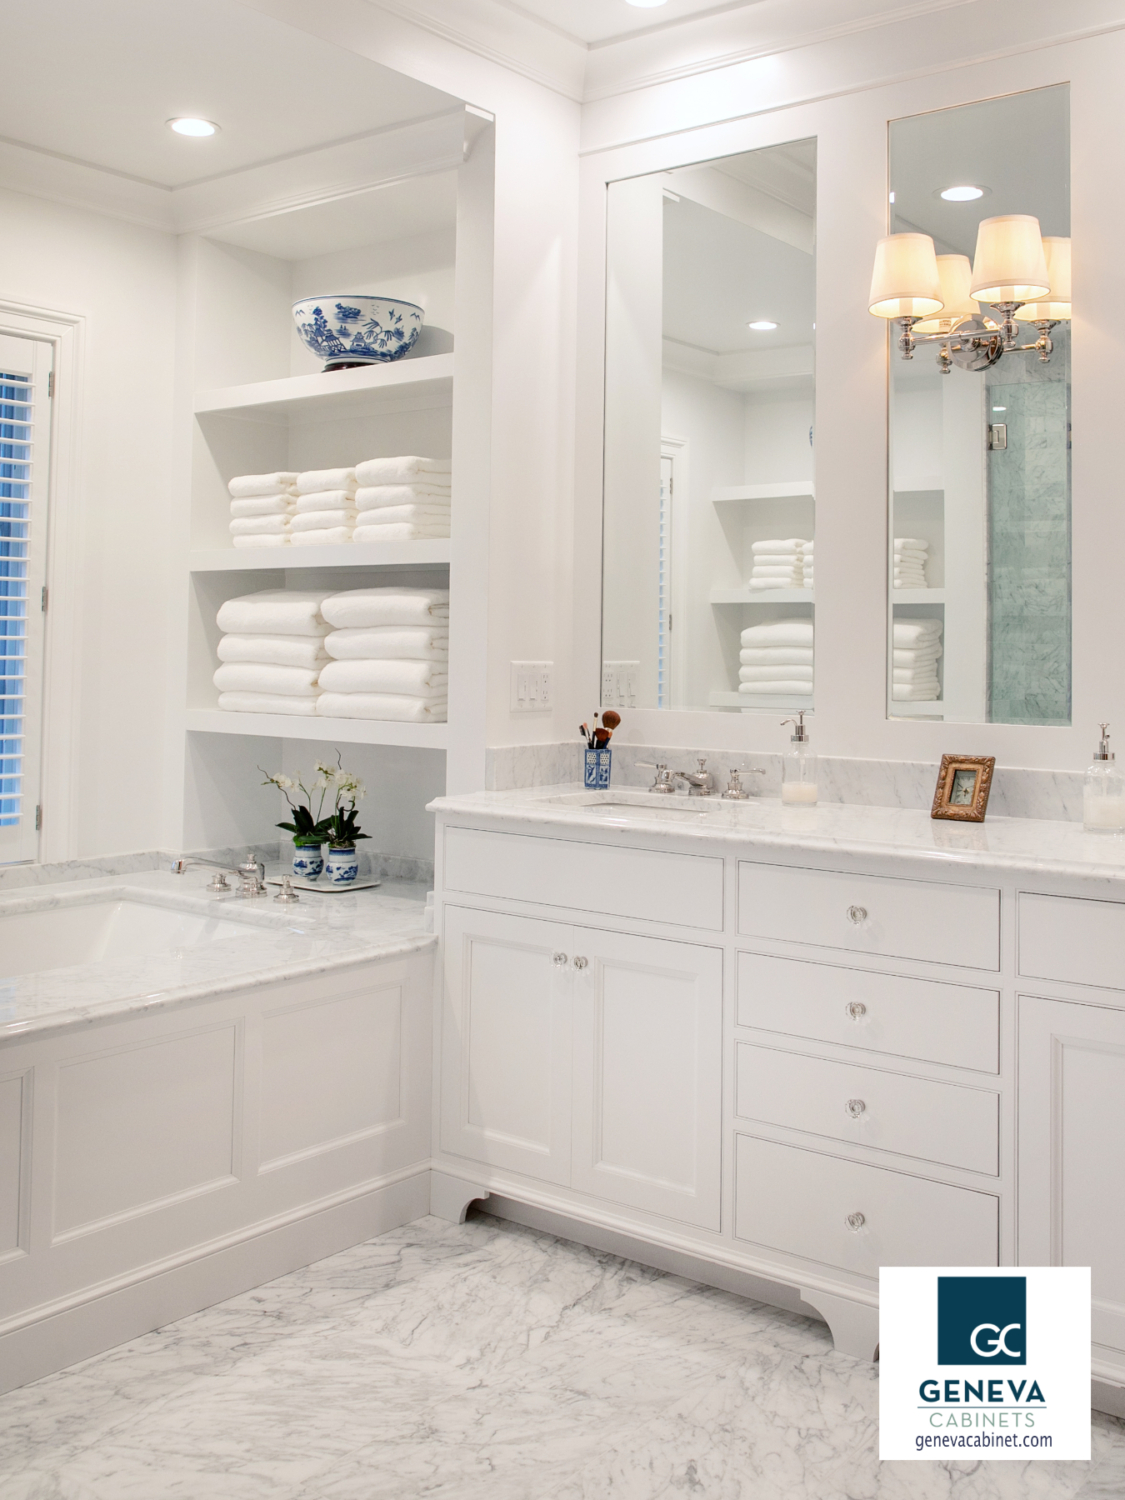 French Country Bath Vanity With Shelving Above Tub Geneva Cabinet Company Llc